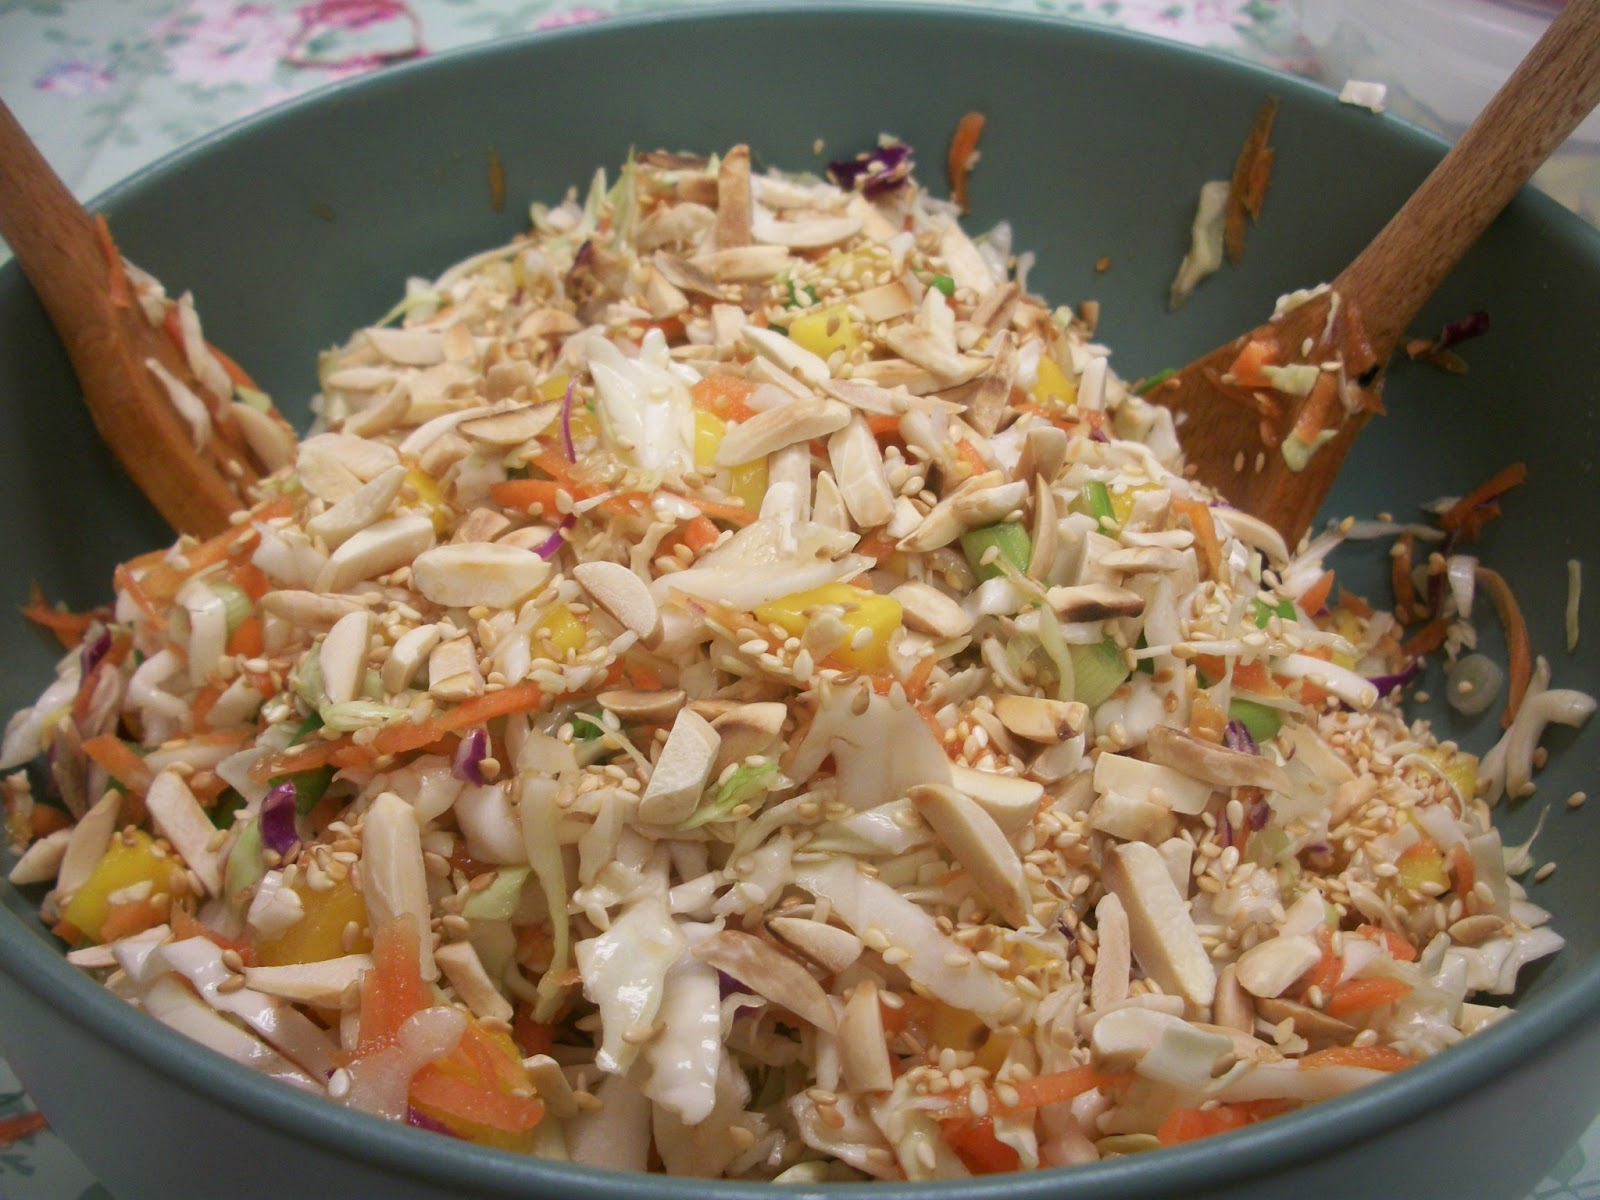 ... slaw asian cabbage mango slaw recipe dishmaps asian cabbage mango slaw